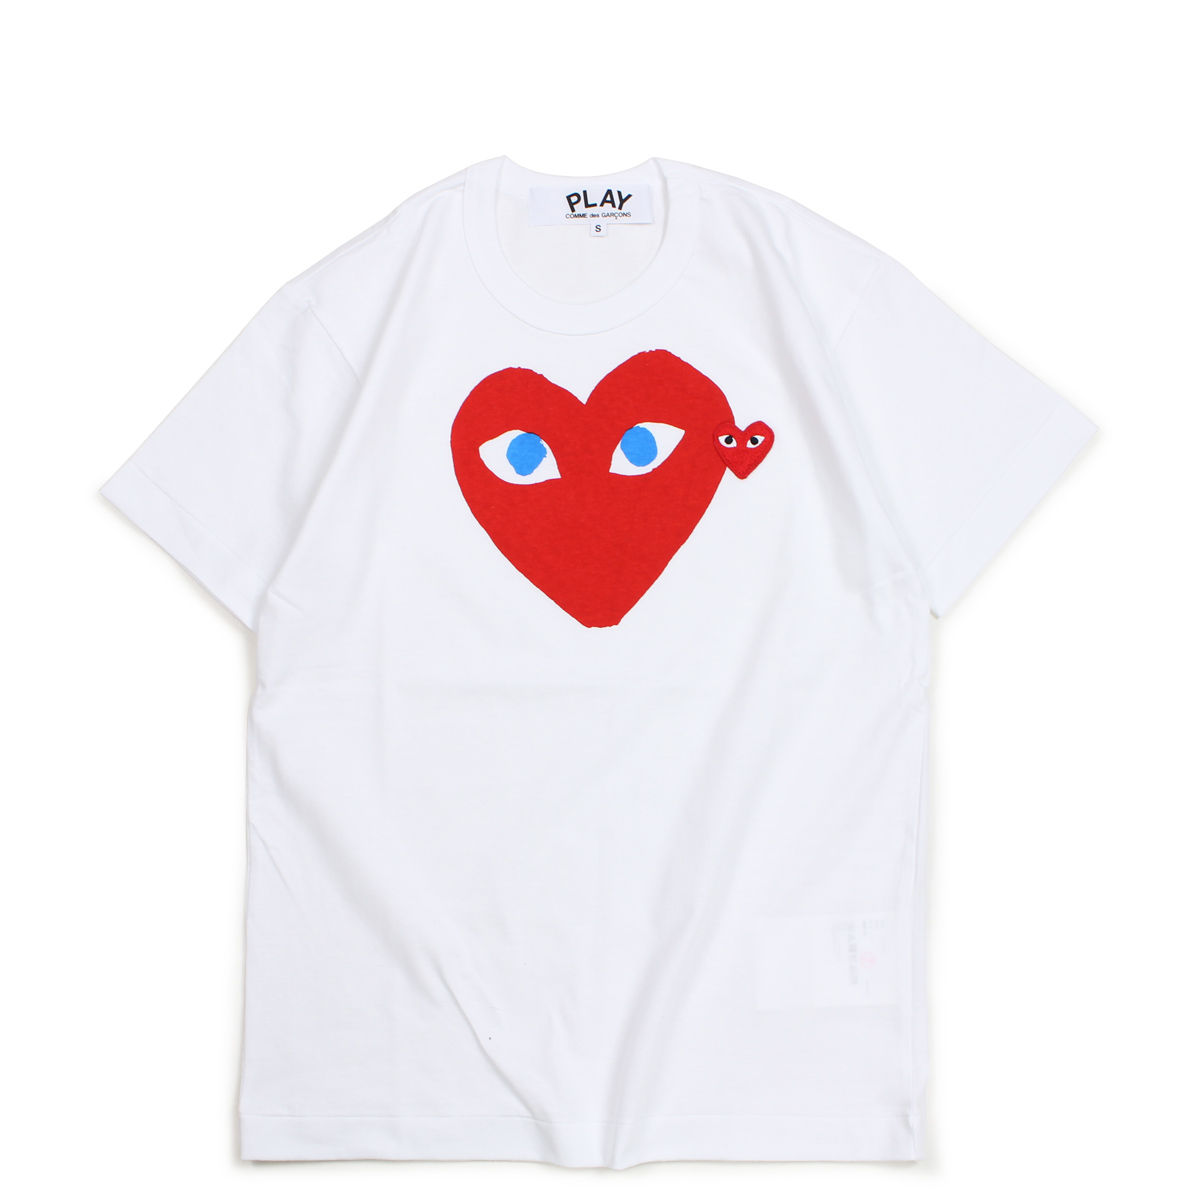 PLAY COMME des GARCONS RED HEART T-SHIRT コムデギャルソン Tシャツ 半袖 メンズ ホワイト AZT086 [10/3 新入荷] [1810]